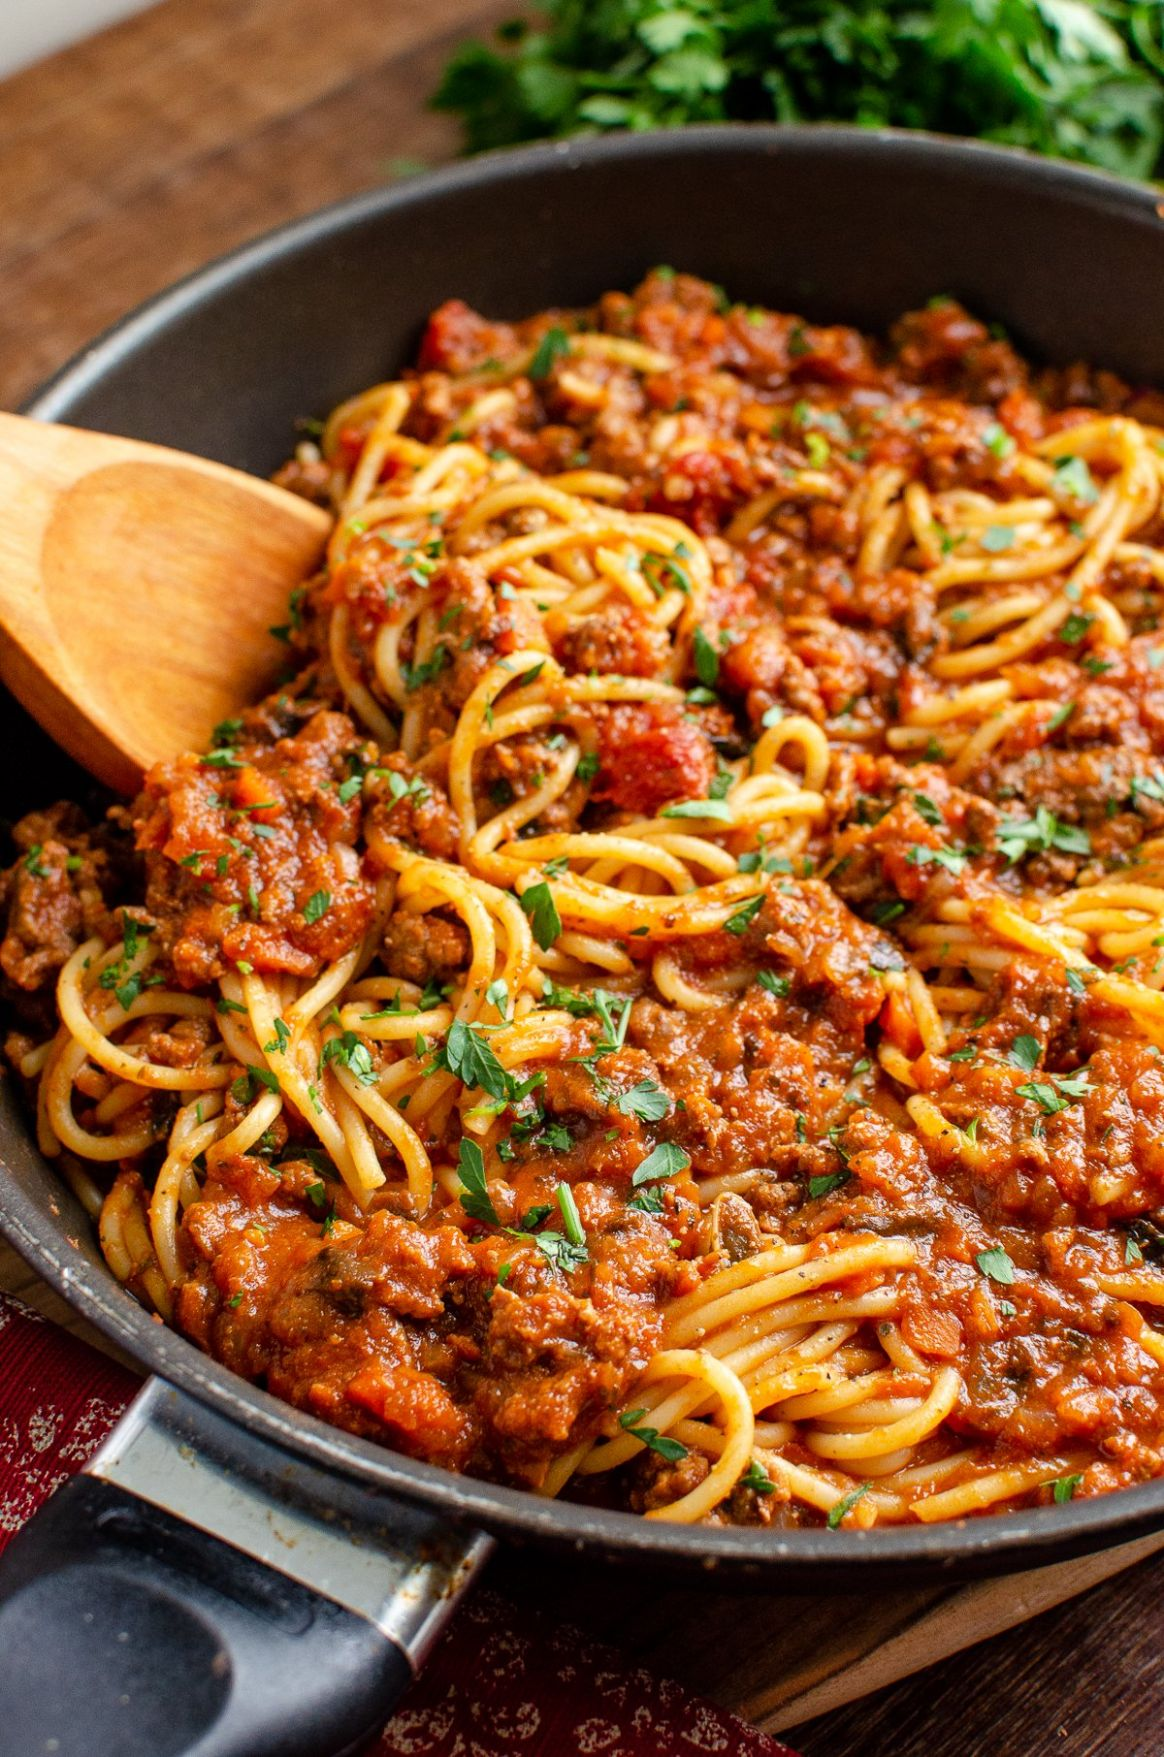 Low Syn Rich Spaghetti Bolognese | Slimming World - Recipes Pasta Bolognese